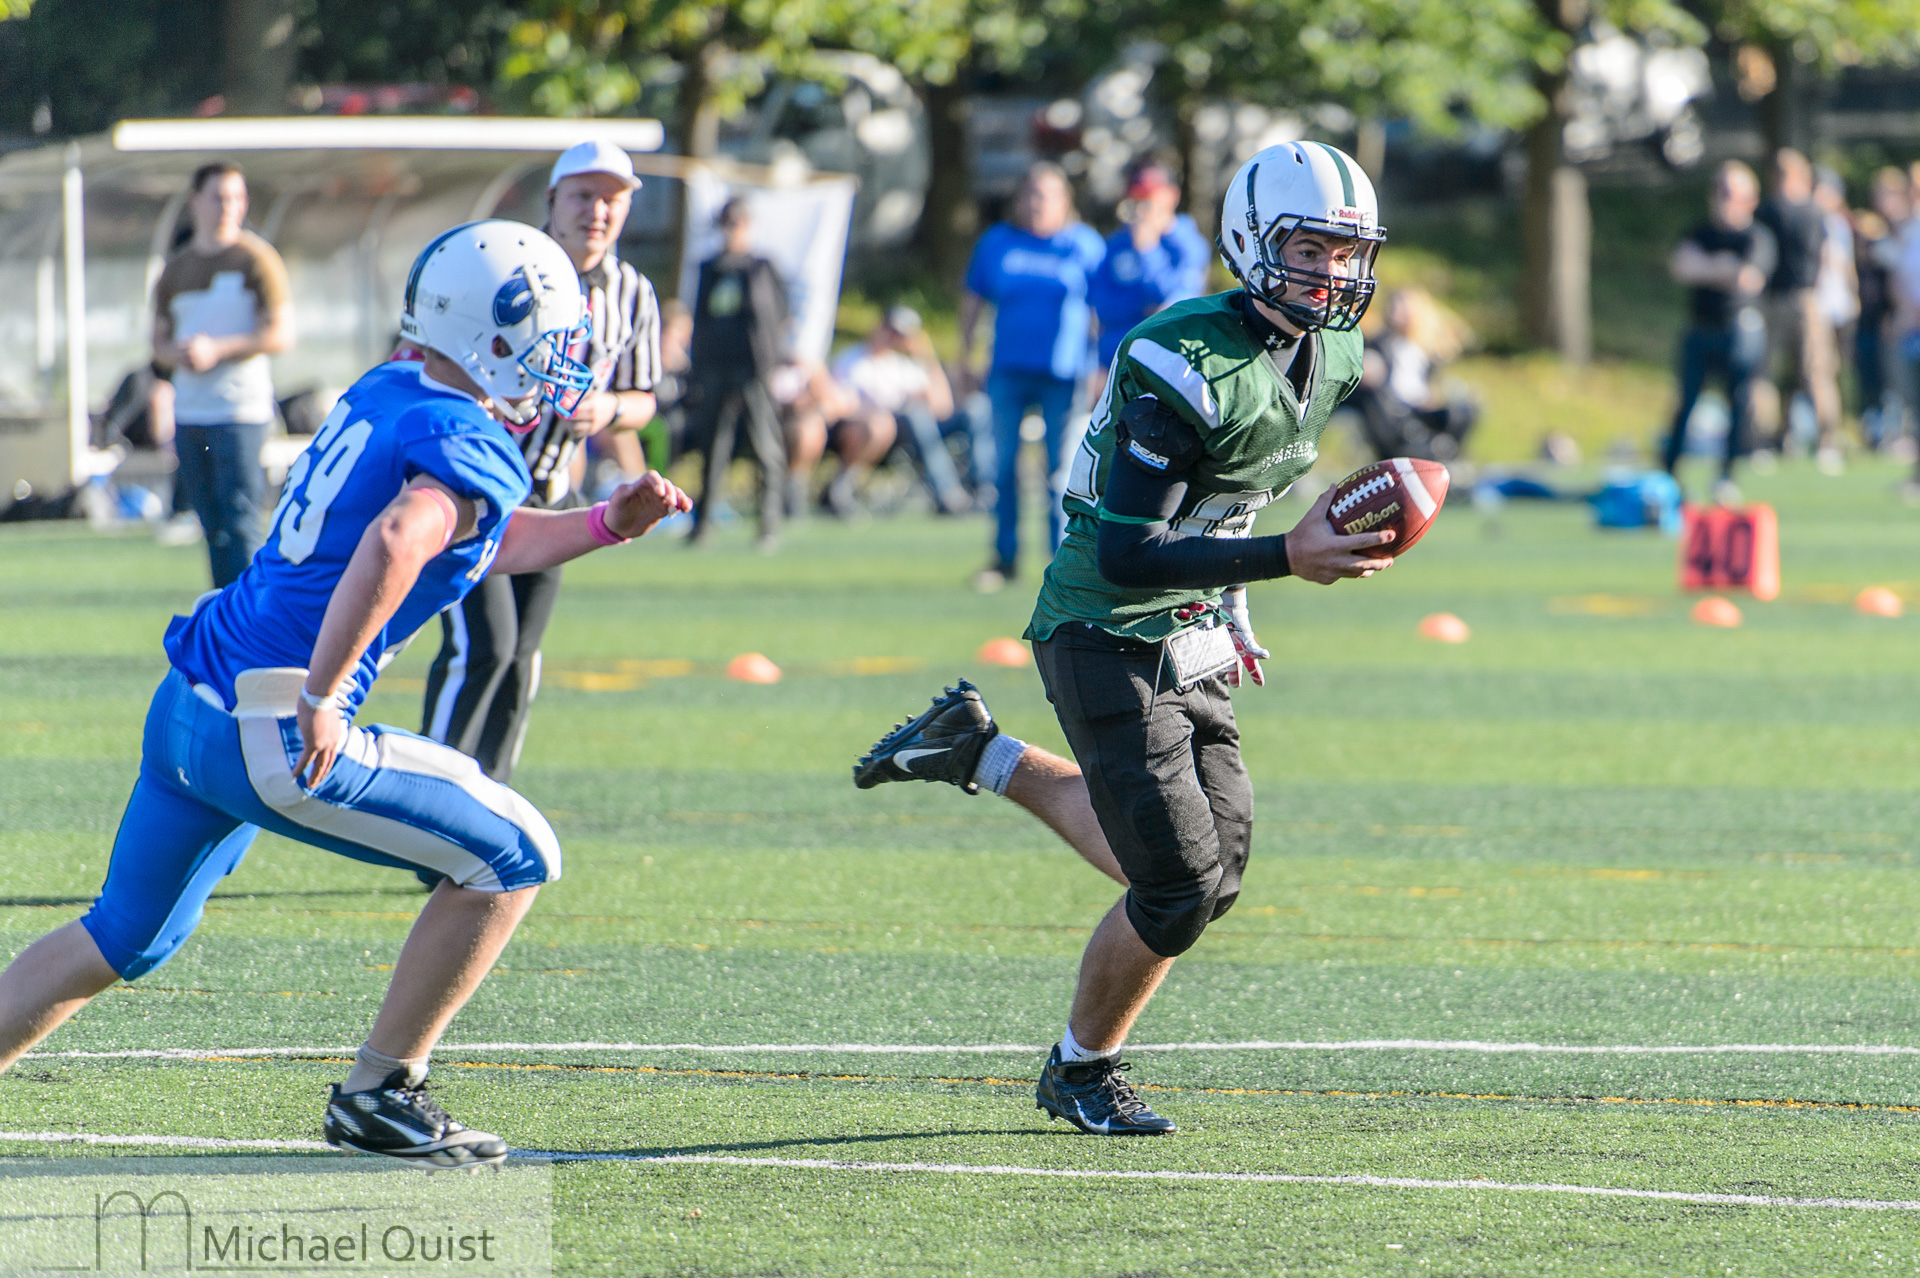 U16-RS-Bowl-2015-Ørestaden-Spartans-vs-Slagelse-Wolfpack-39